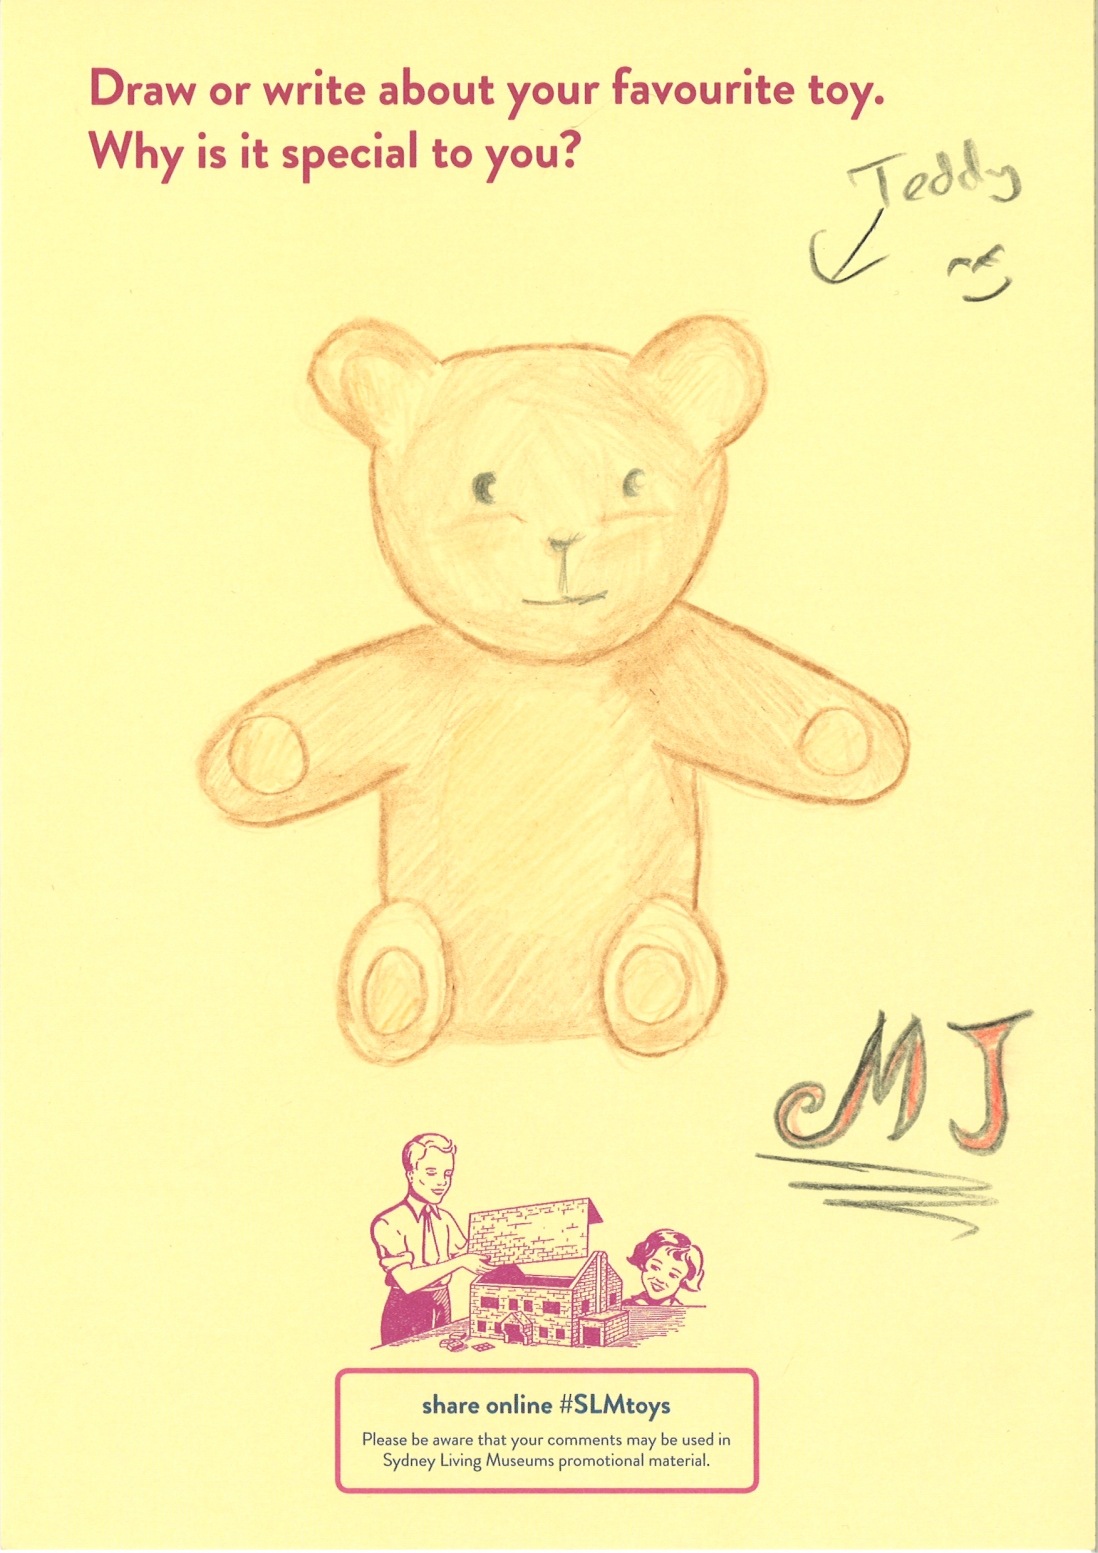 An adult's drawing of a brown teddy bear